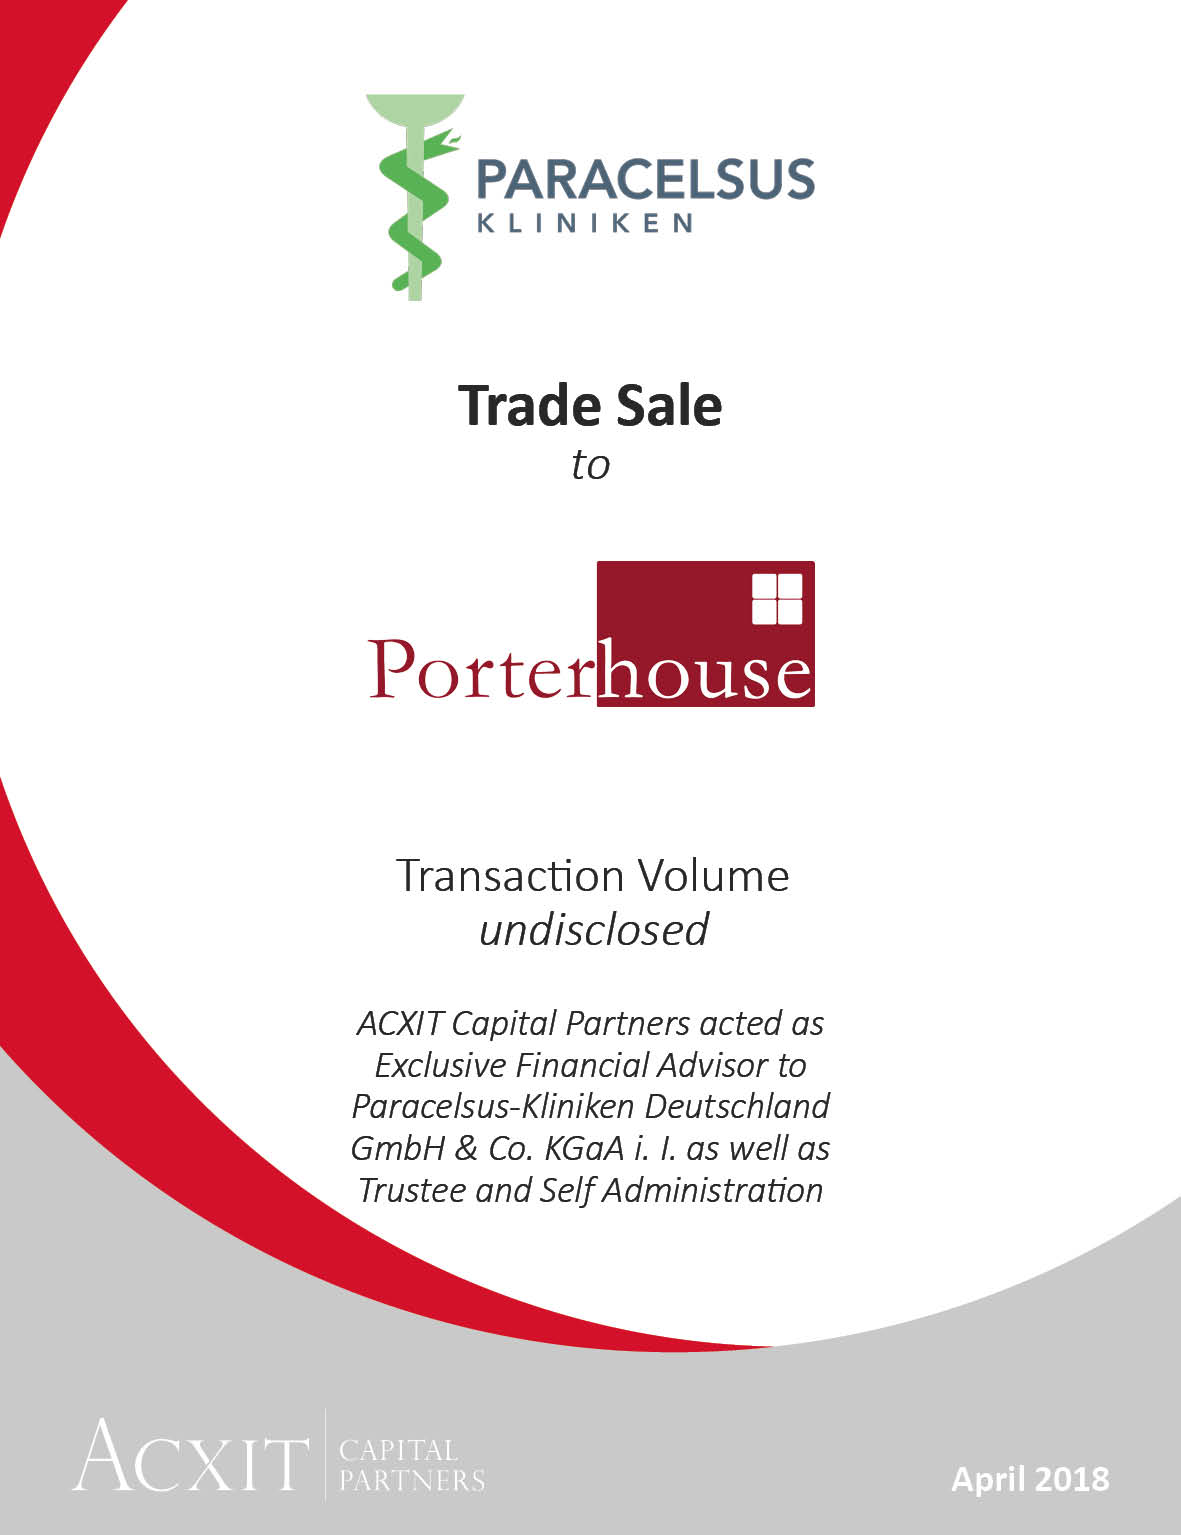 Trade Sale of Paracelsus Kliniken to Porterhouse